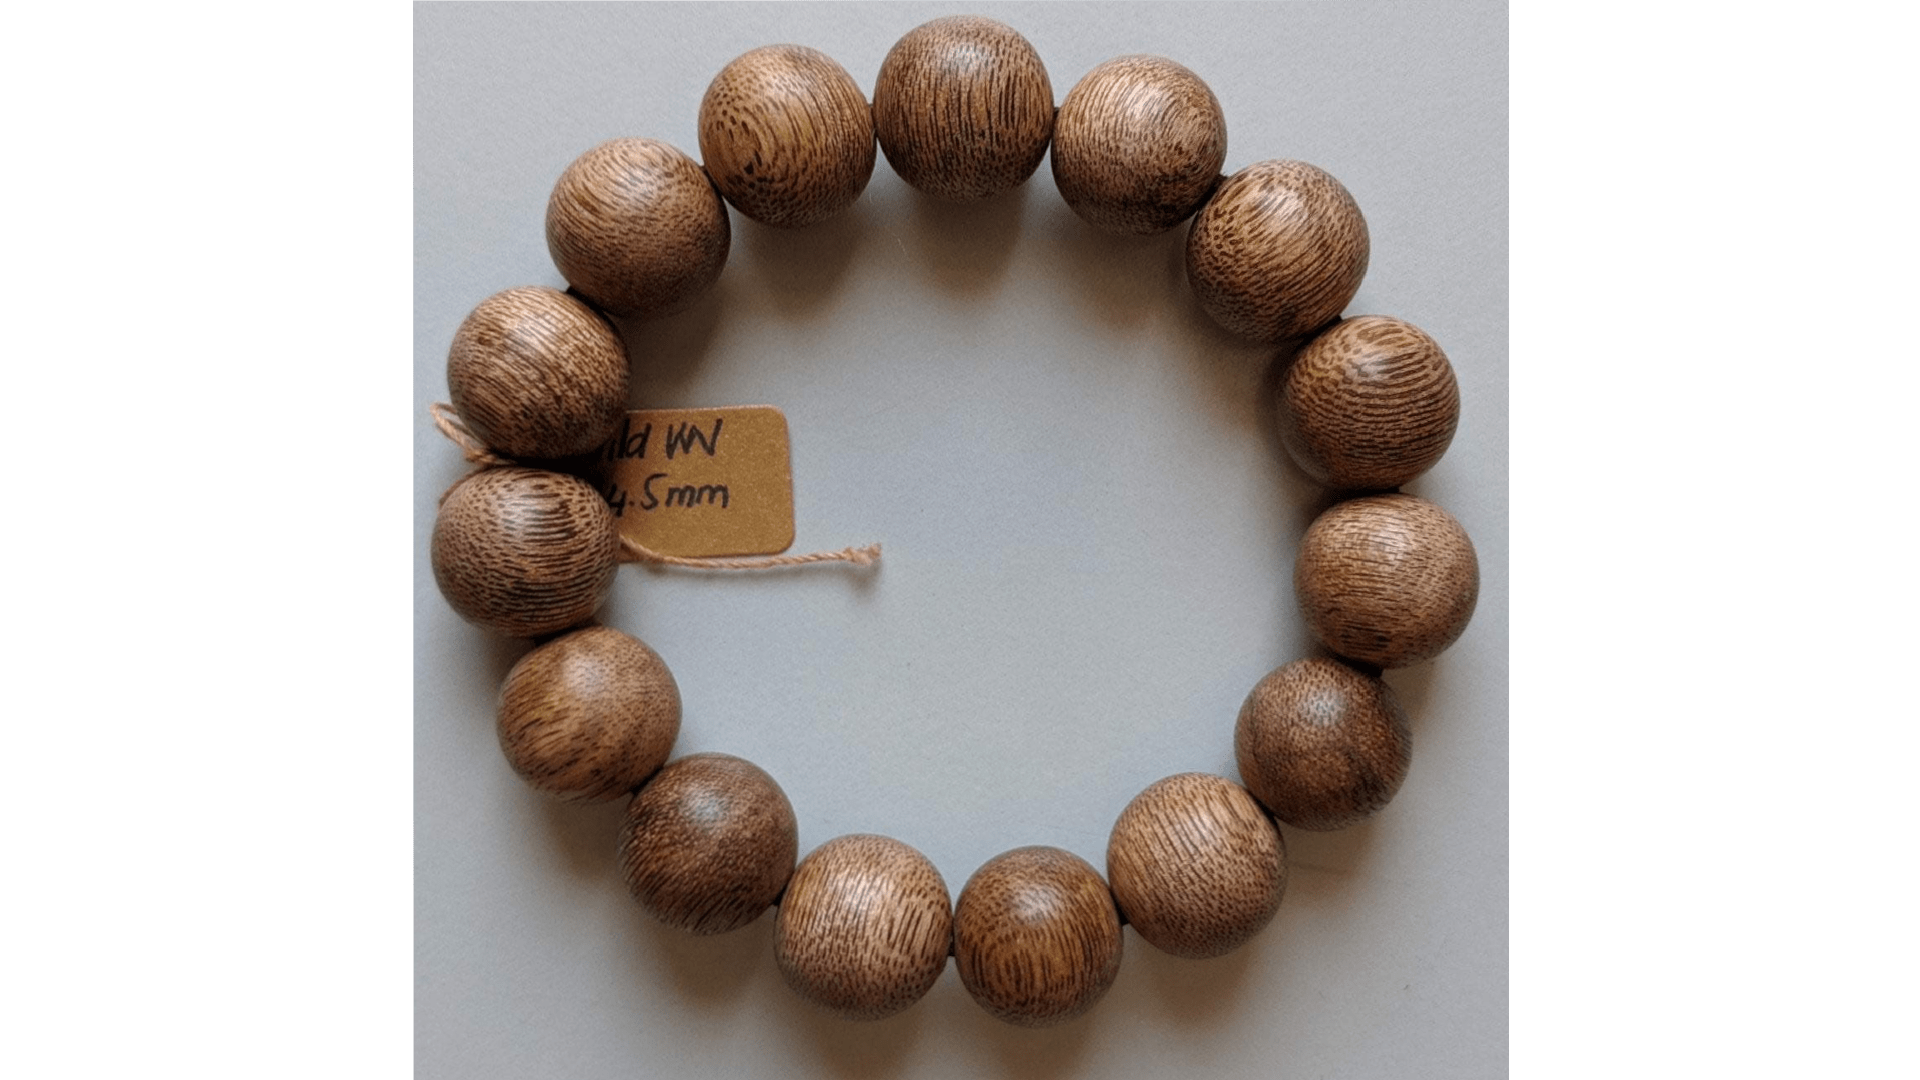 The BPB -  Vietnamese Wild Agarwood  Bracelet 14.5mm- 15g